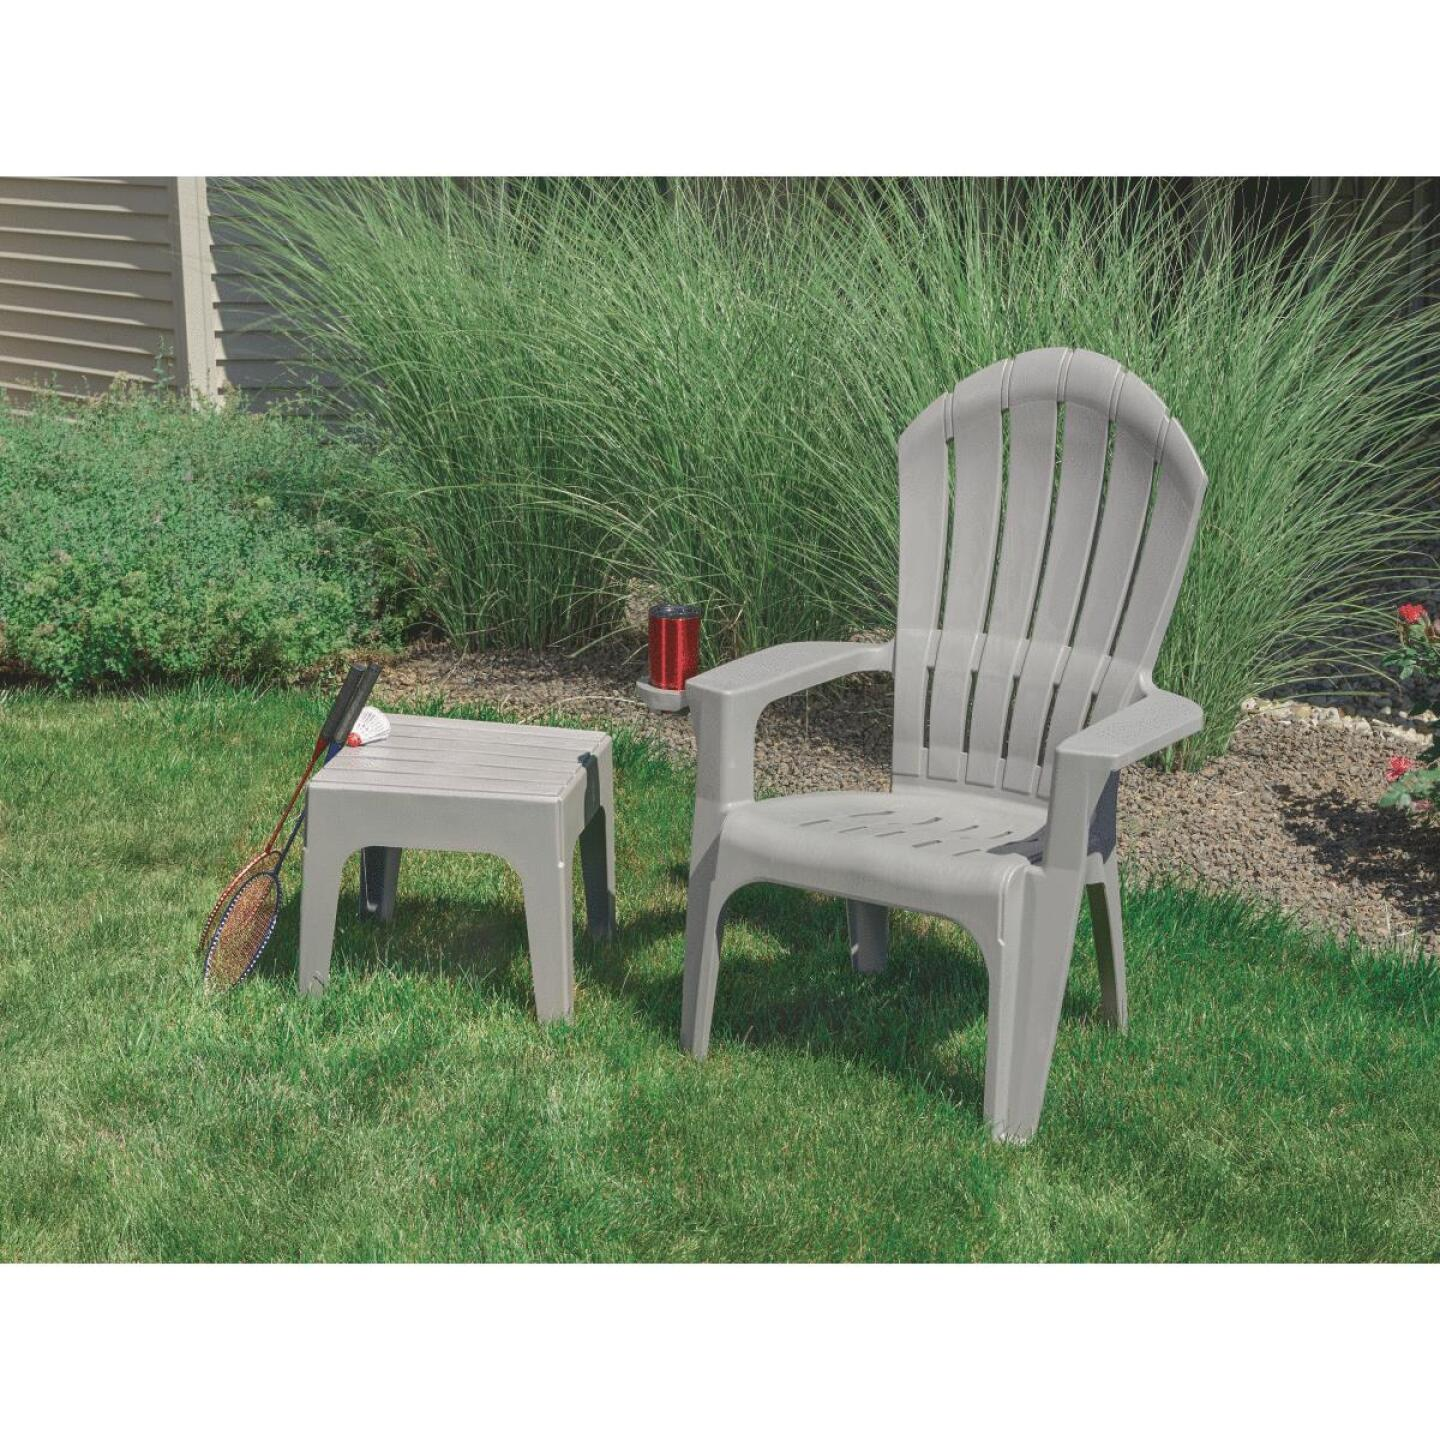 Adams Big Easy Gray Resin Adirondack Chair Image 6